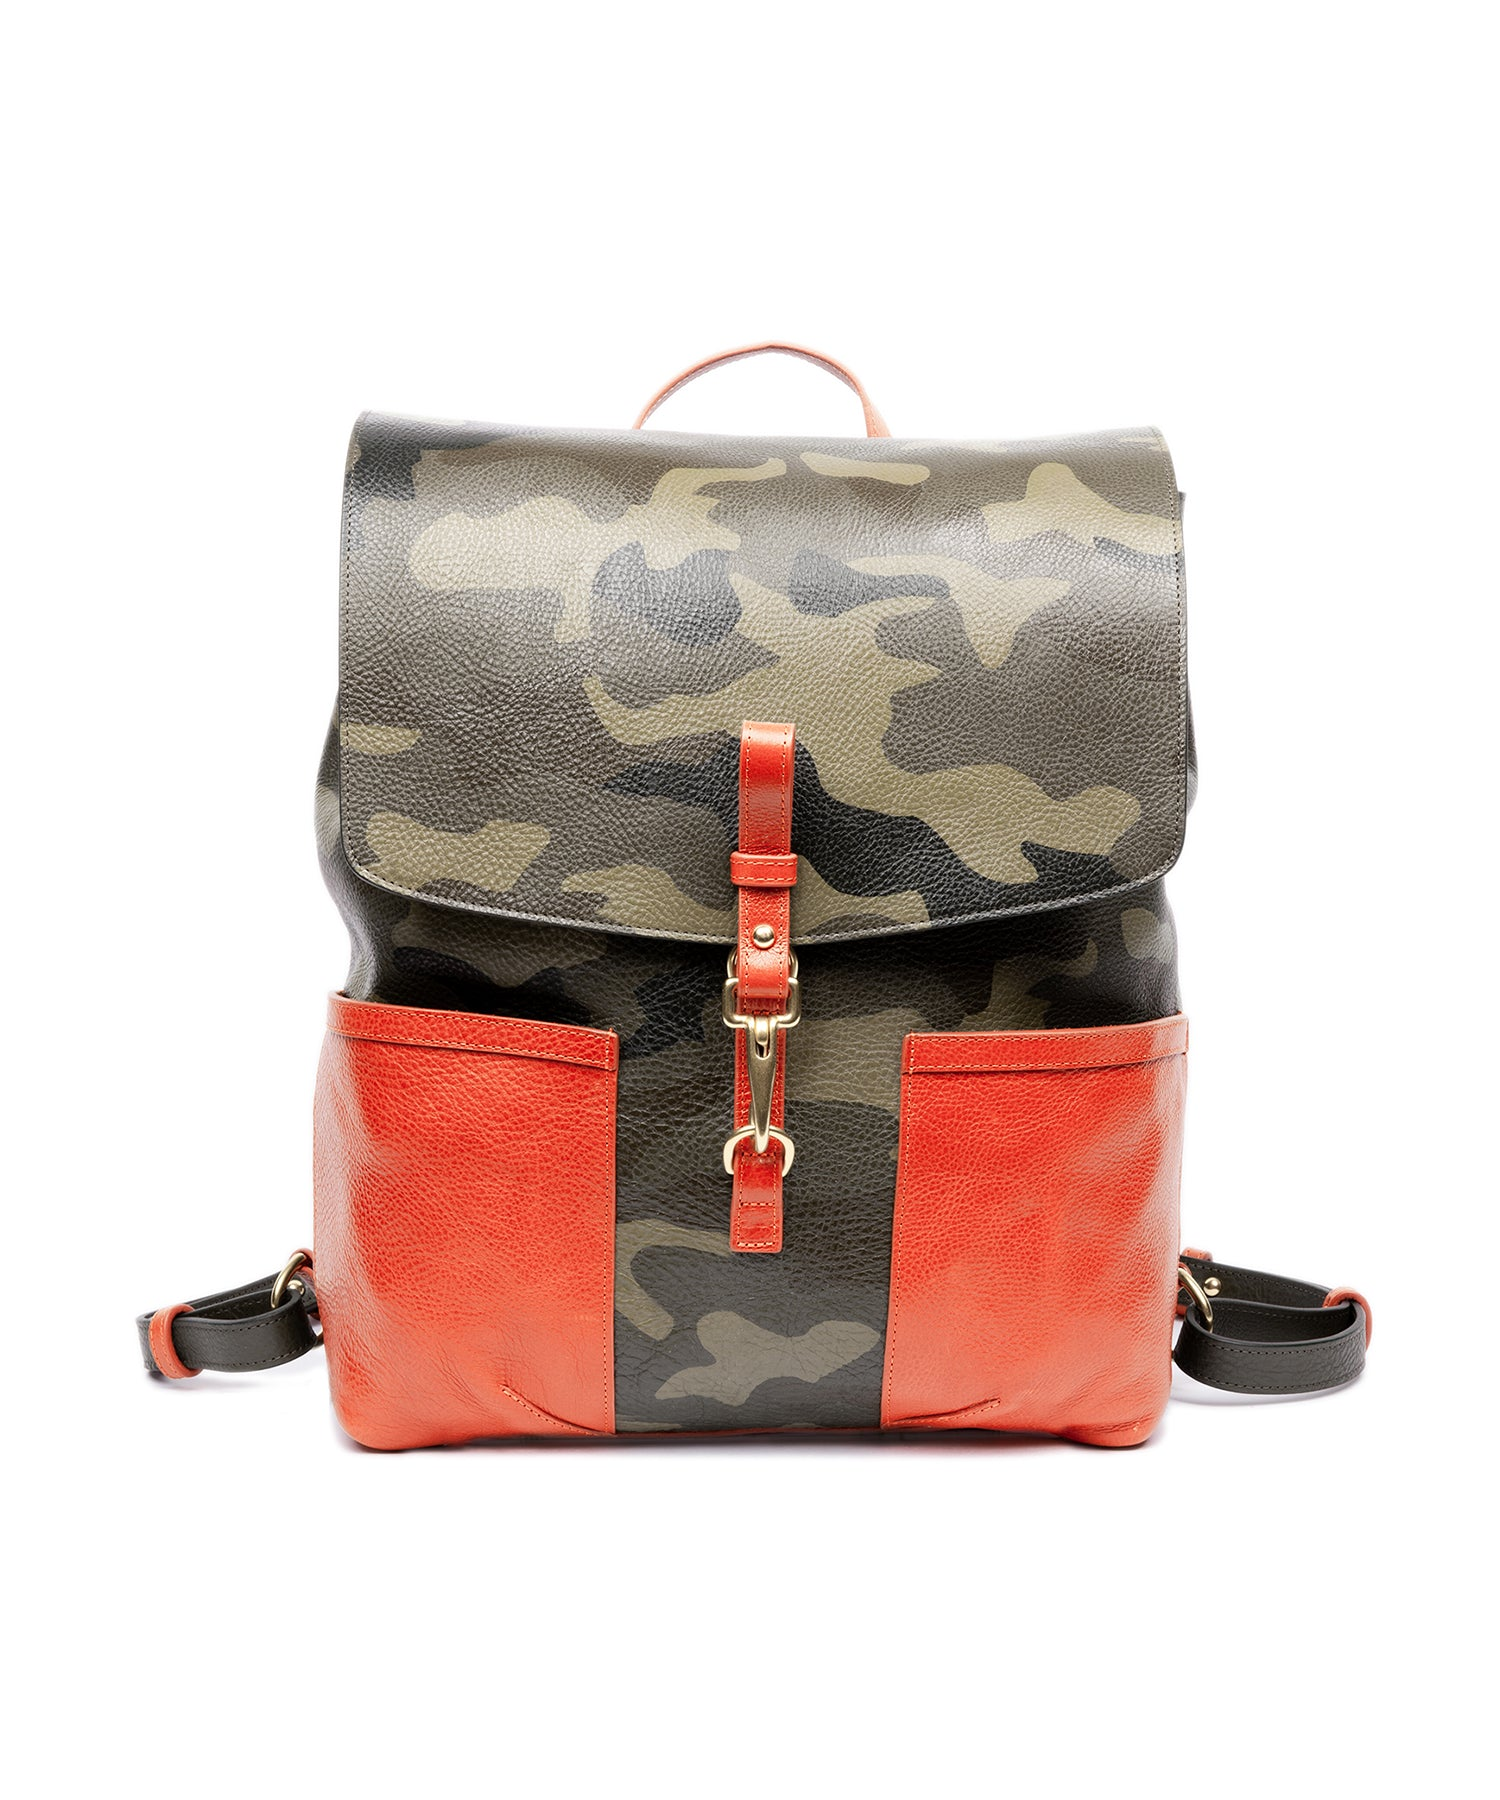 Lotuff Leather Hand Painted Leather Knapsack in Camo